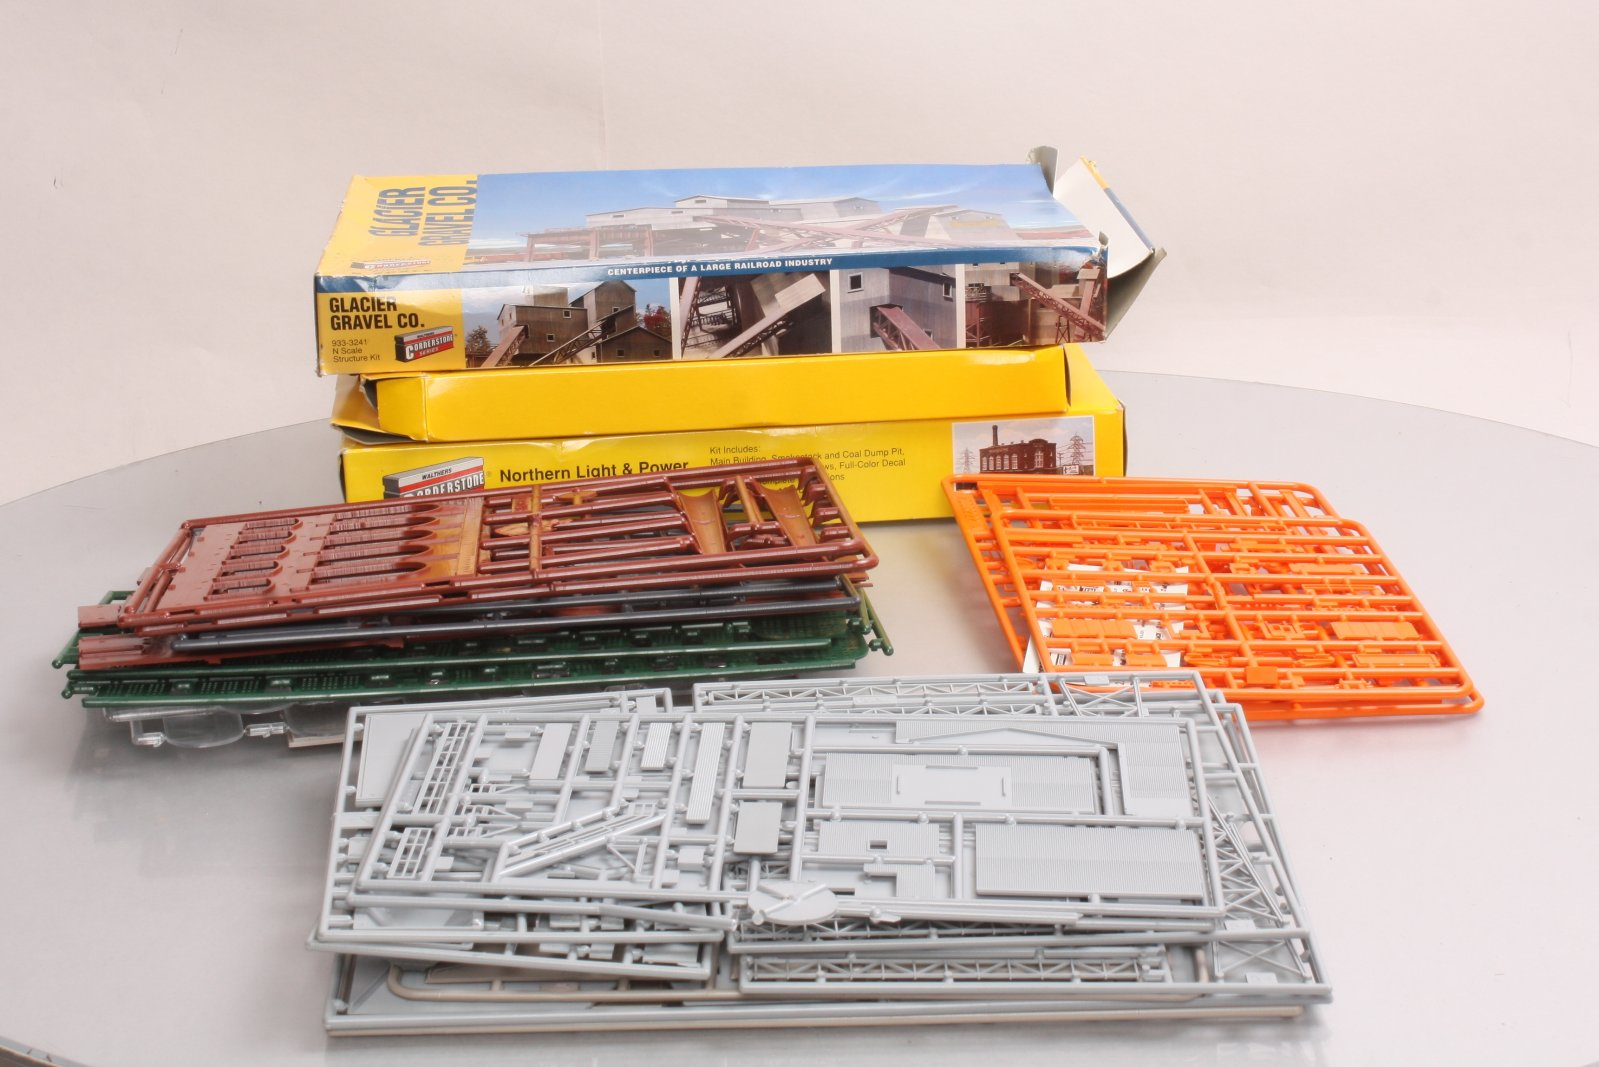 Buy Walthers N Scale Building Kits: 933-3214, 933-3222, 933-3241 (3